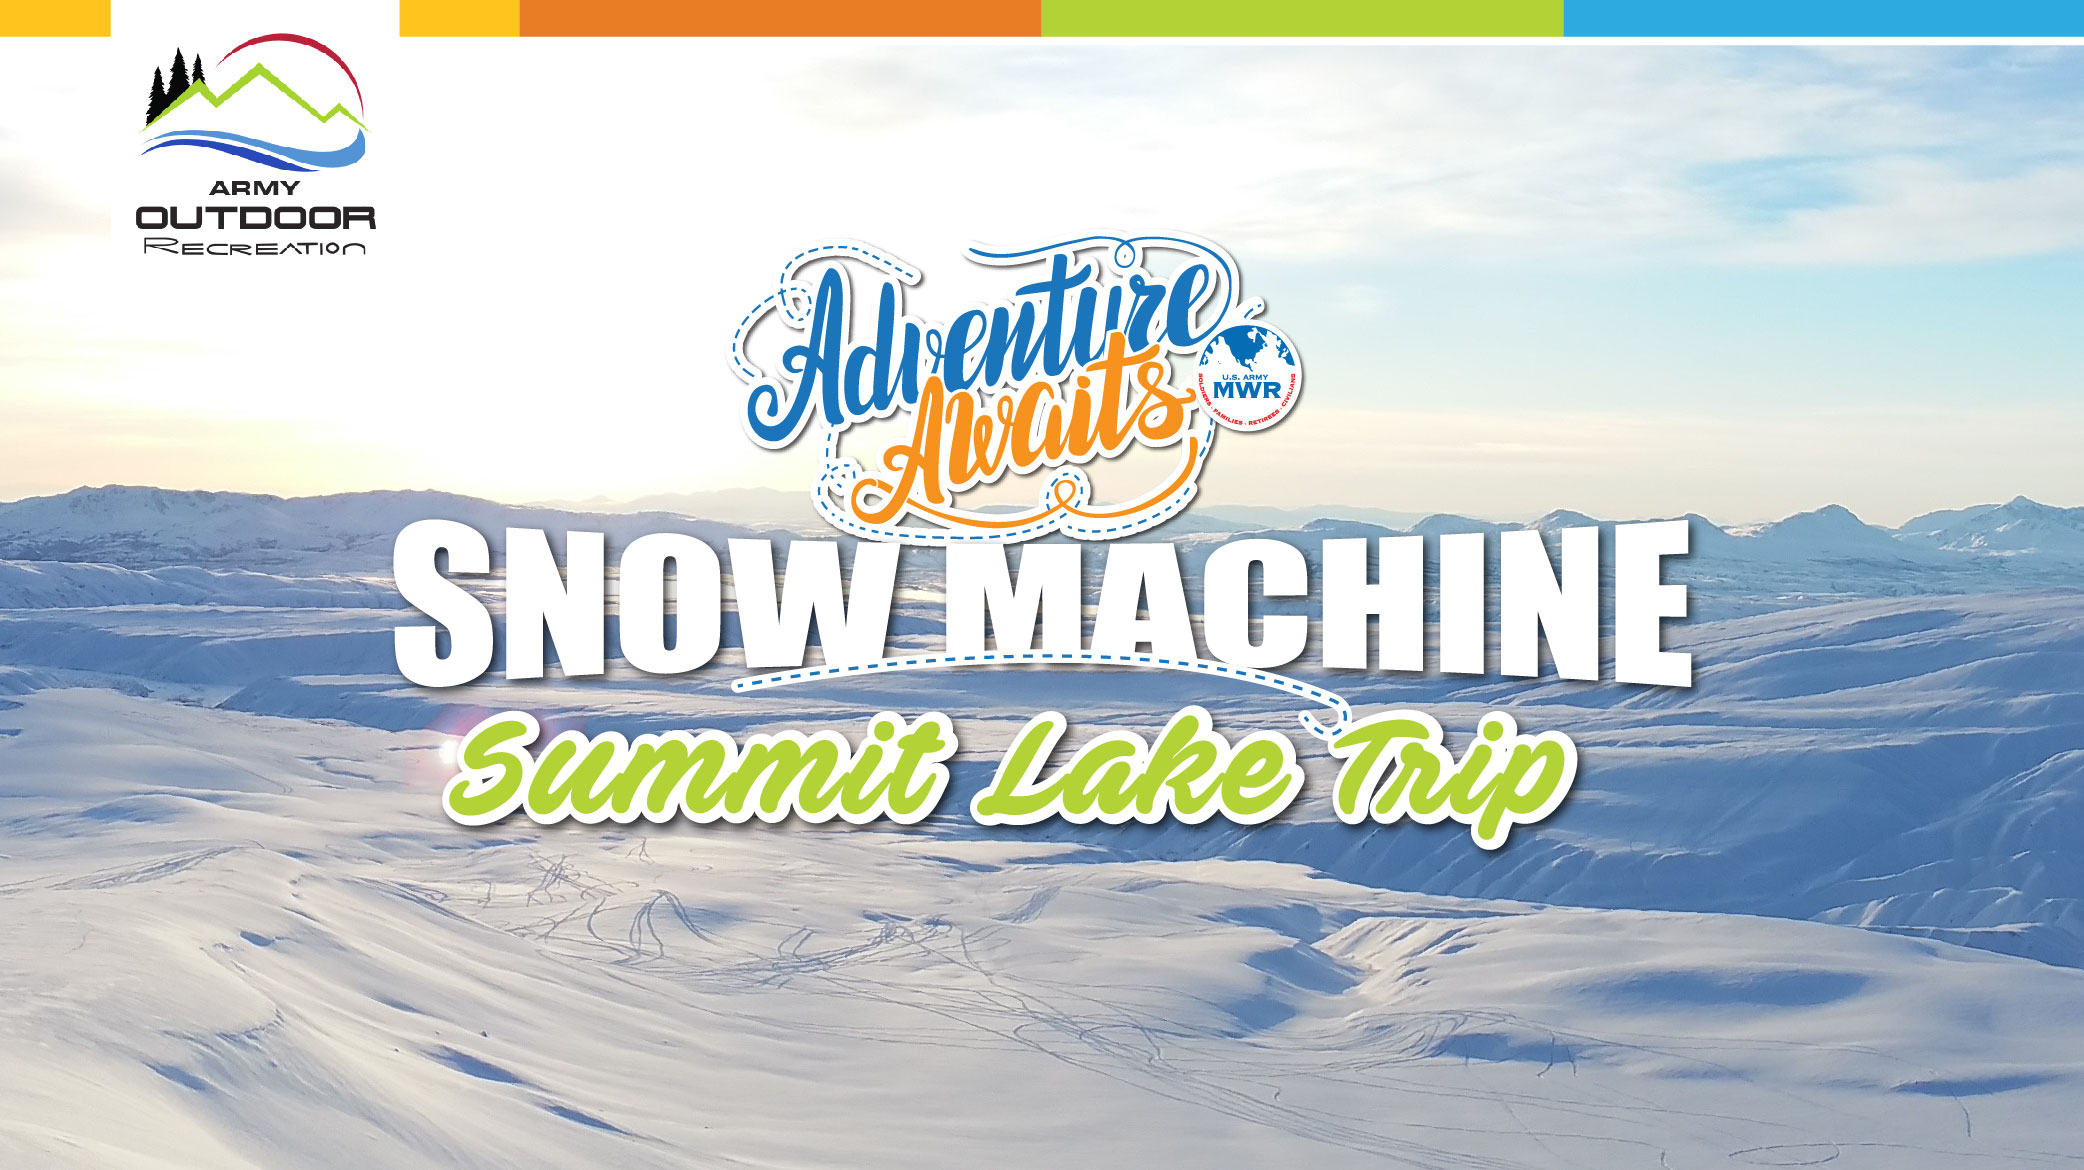 Snow machine - Summit Lake Trip